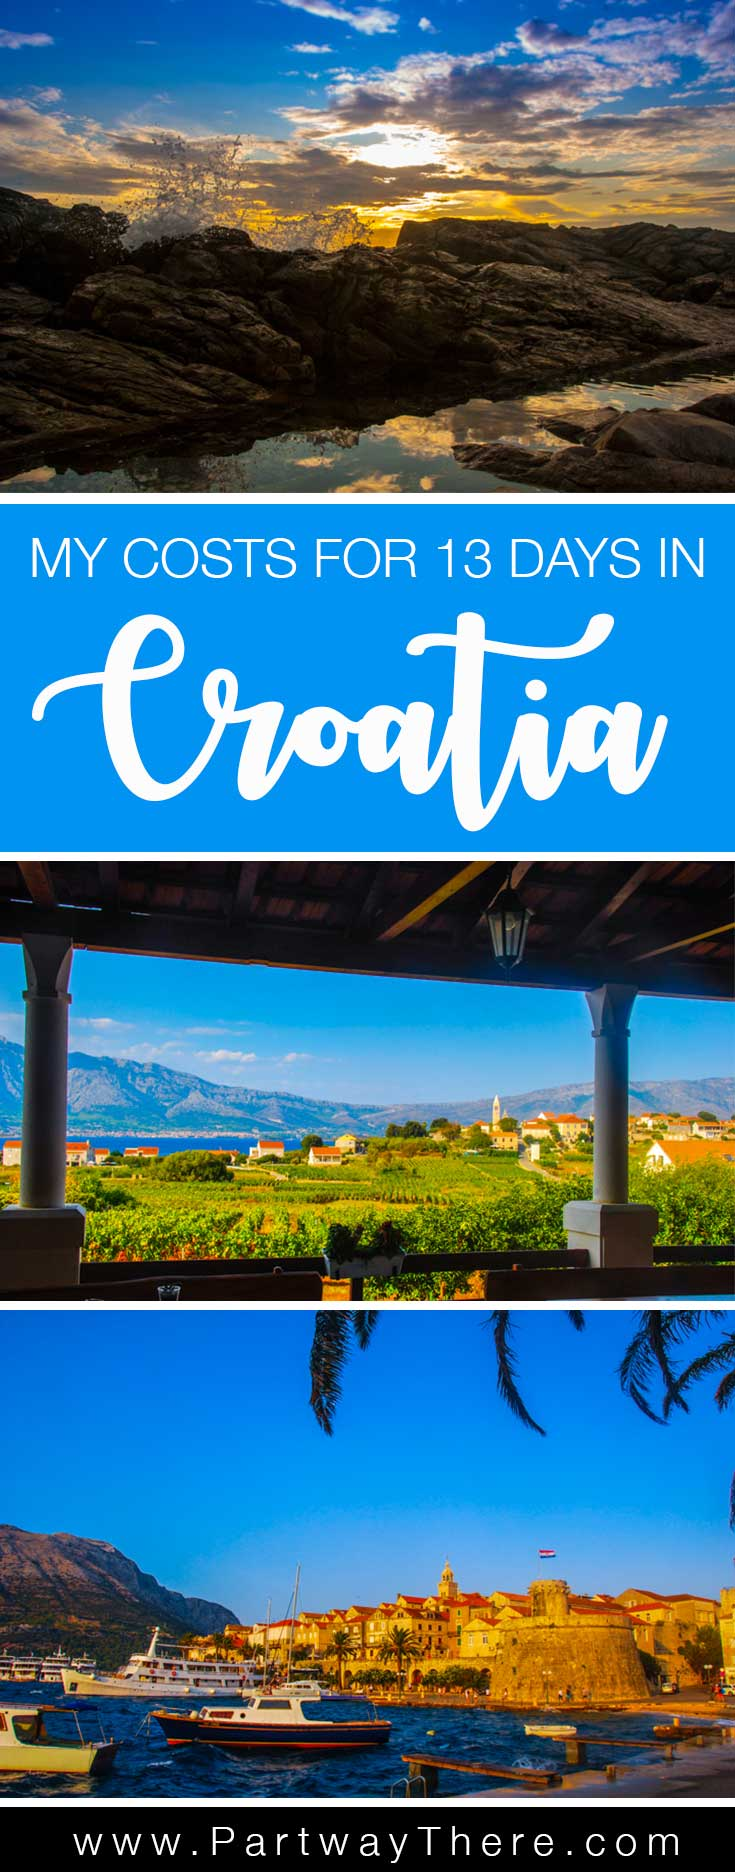 Costs for 13 Days Vacationing in Croatia